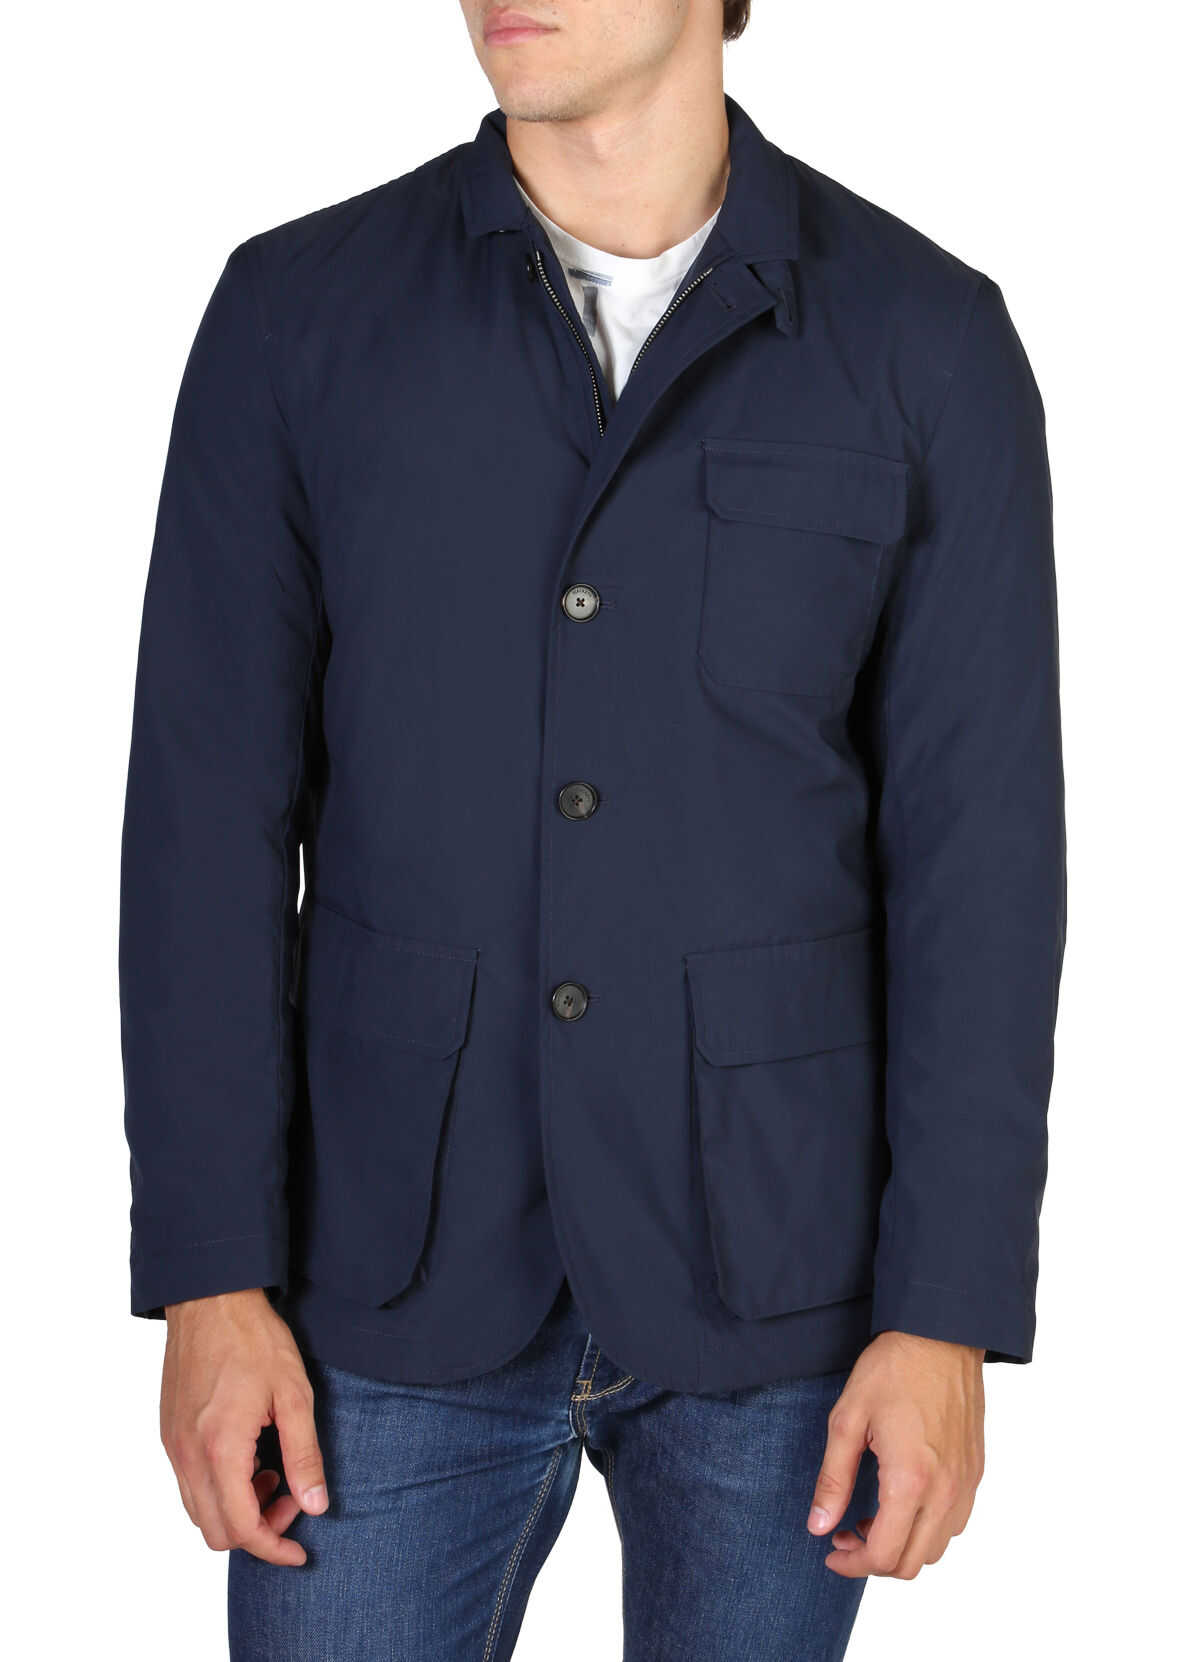 Hackett Hm402177 BLUE imagine